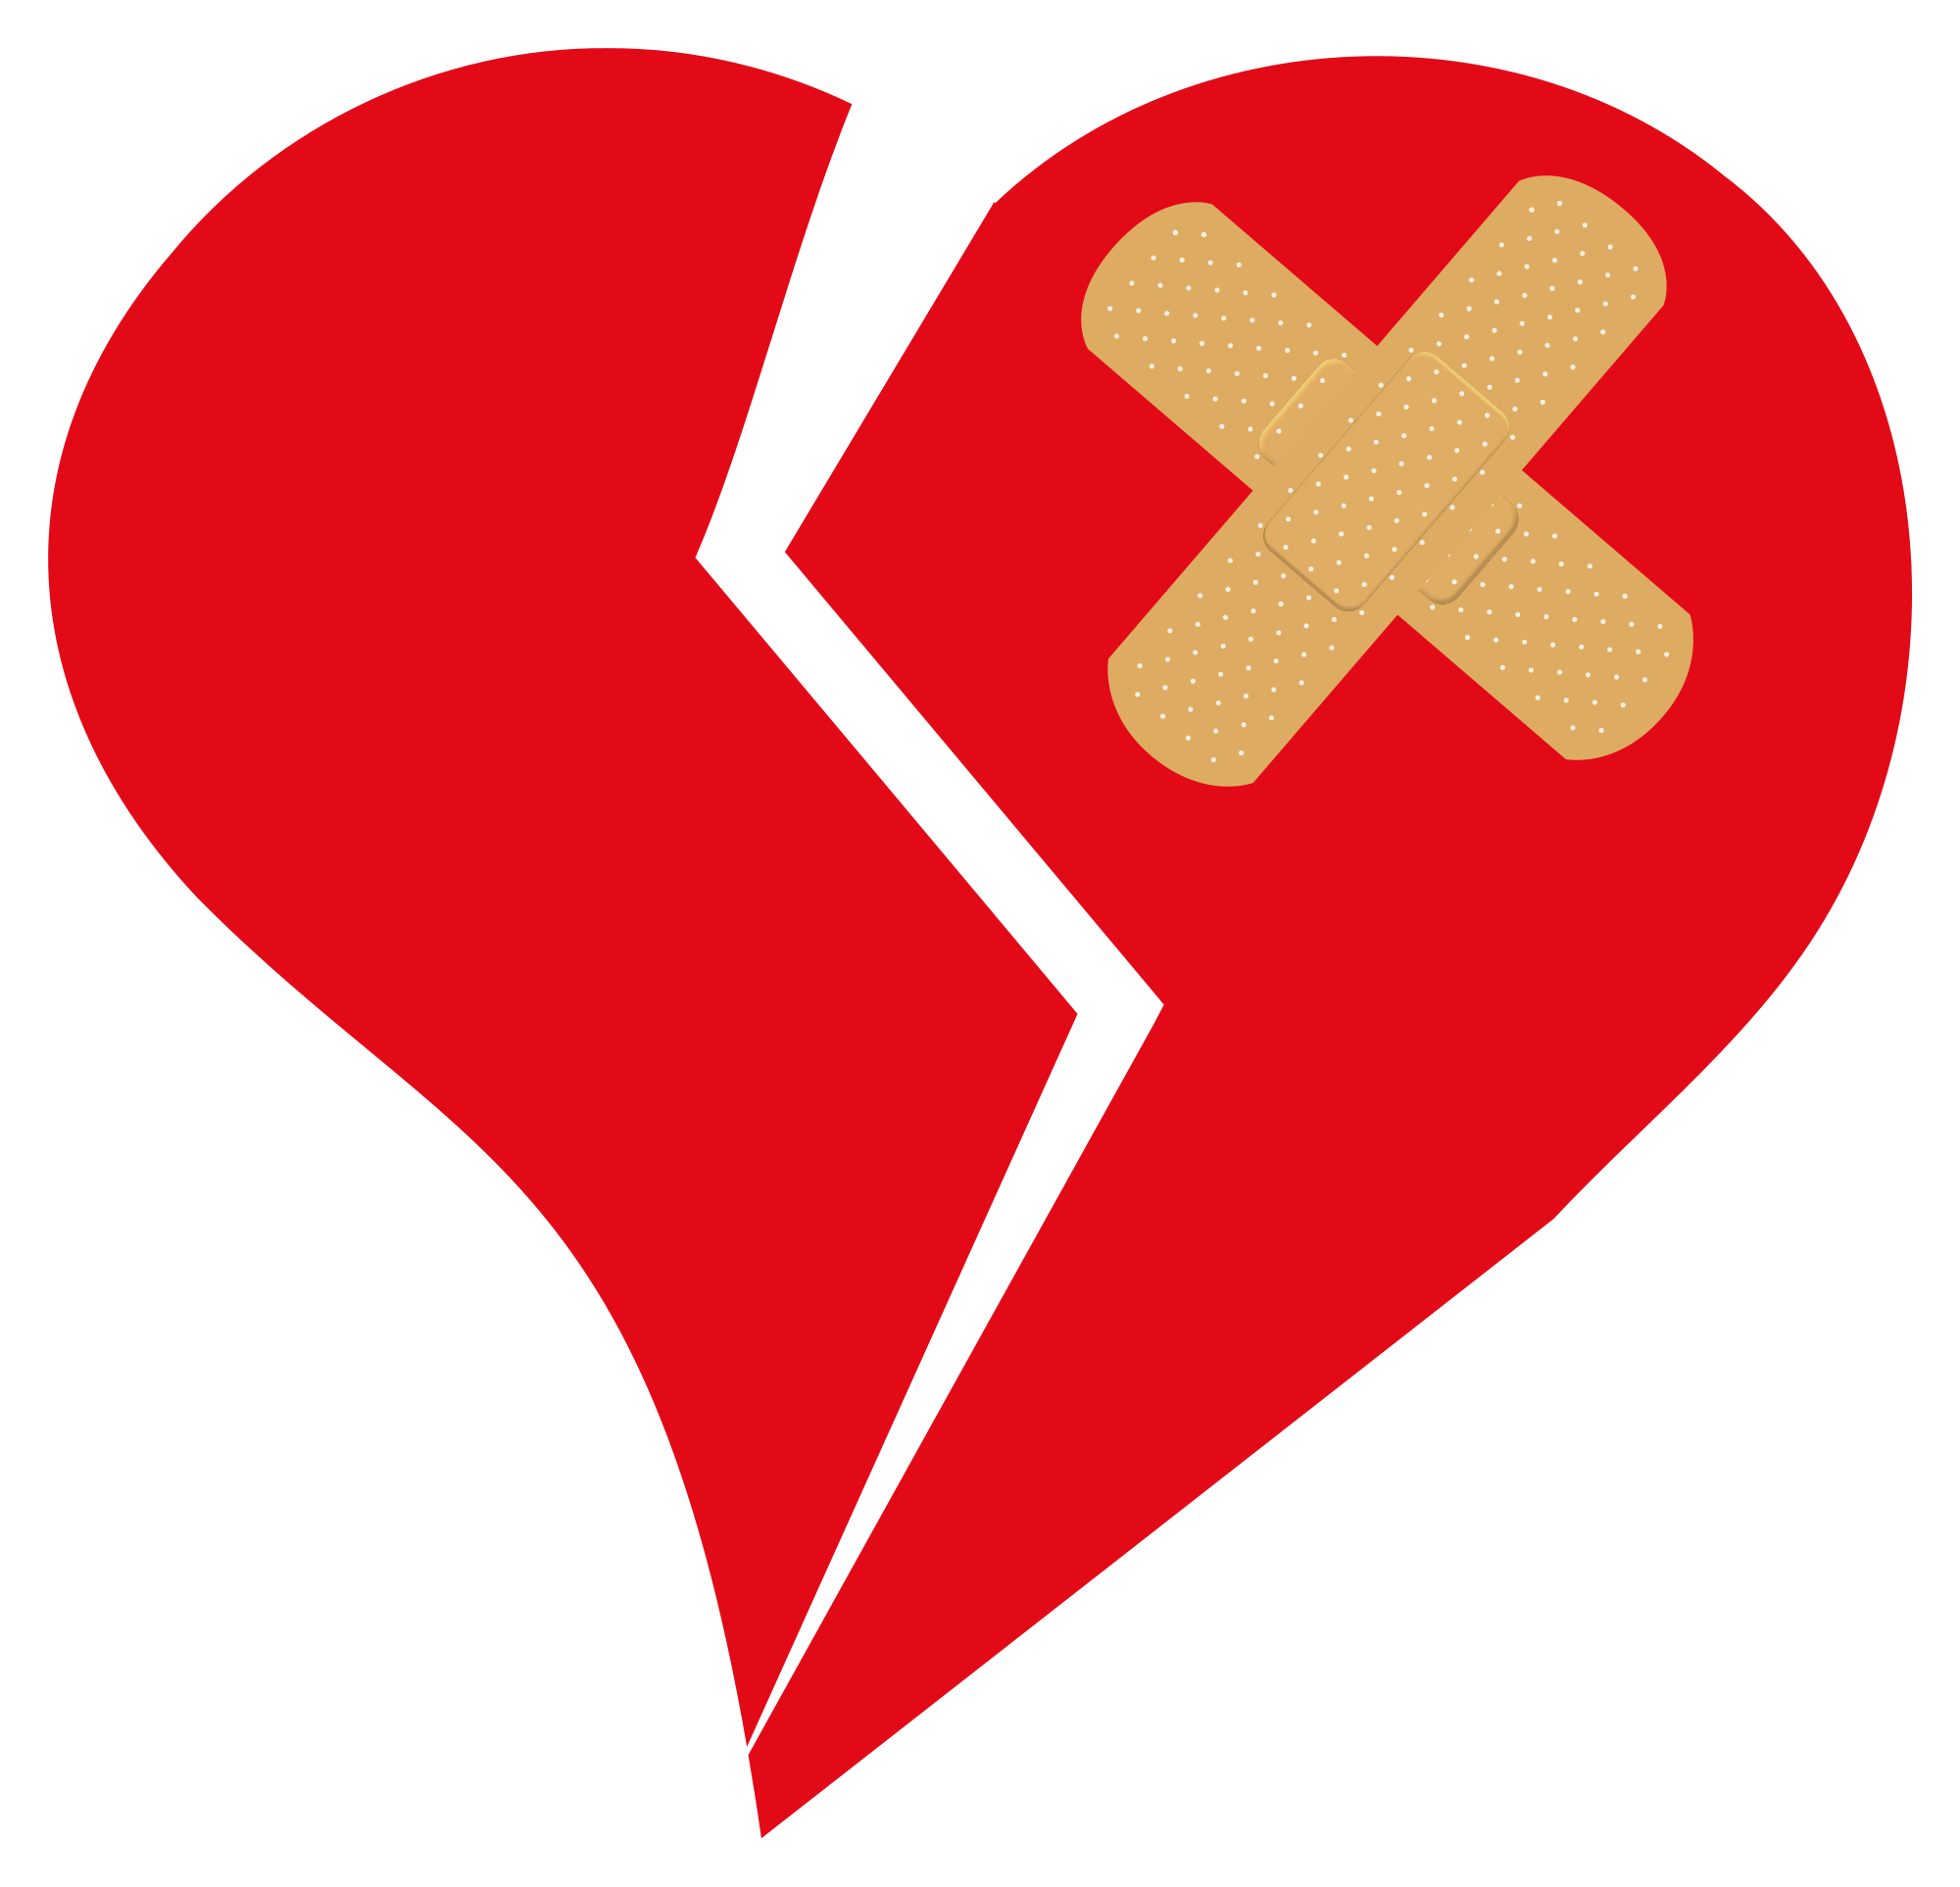 vector black and white What to do when. Bandage drawing heart